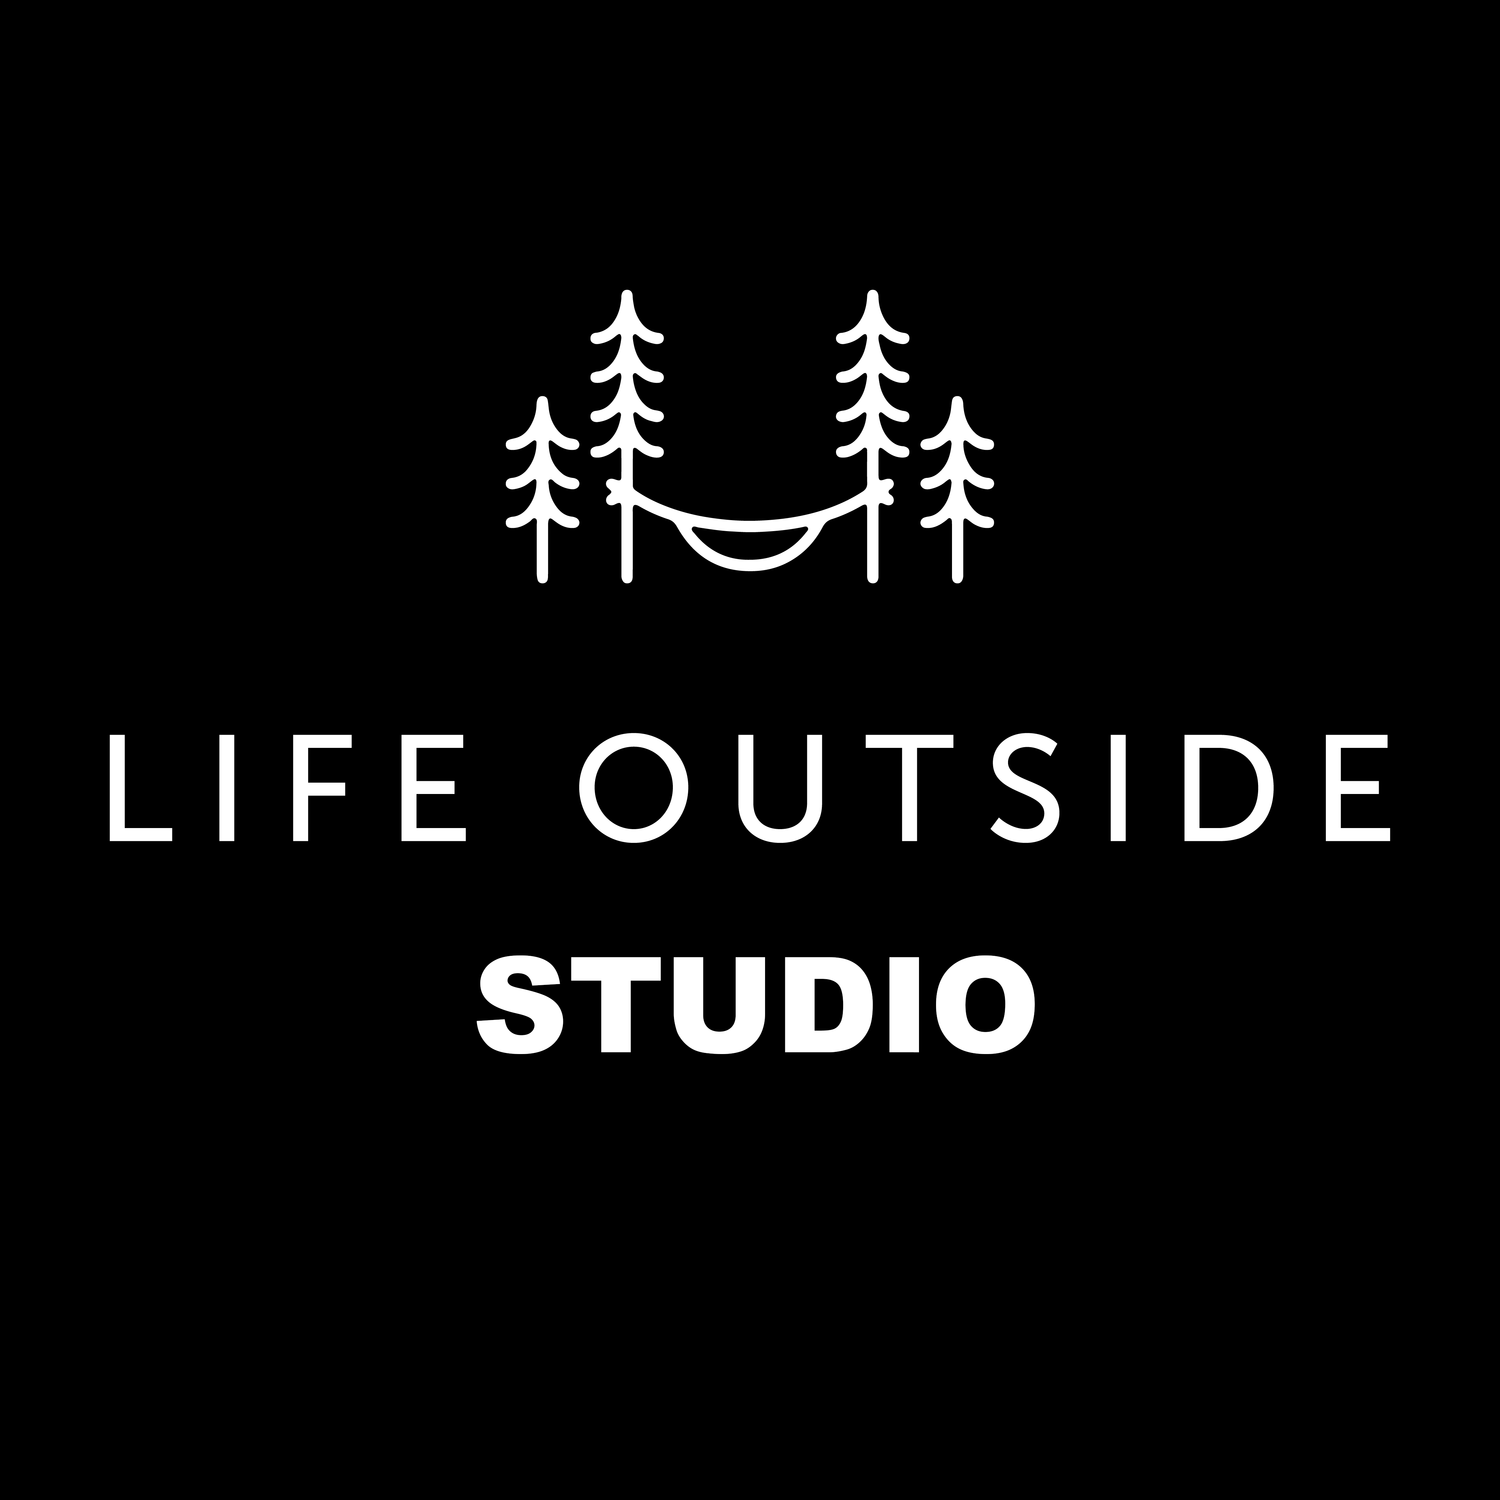 Life Outside Studio